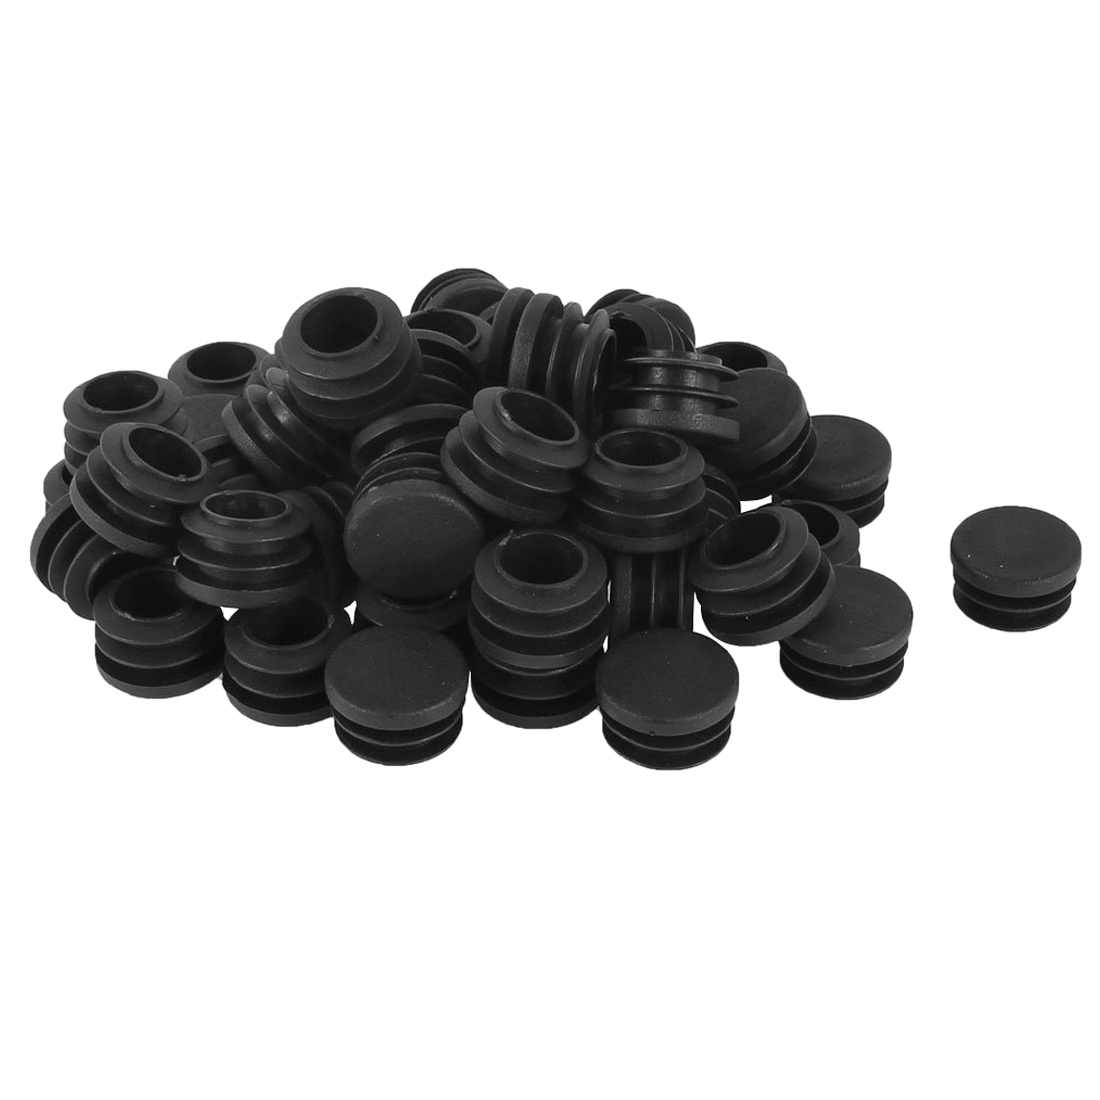 Botique Plastic Round Cap Chair Table Legs Ribbed Tube Insert 22mm Dia 50 Pcs rubber round table foot cover protector 8mm inner dia 24 pcs